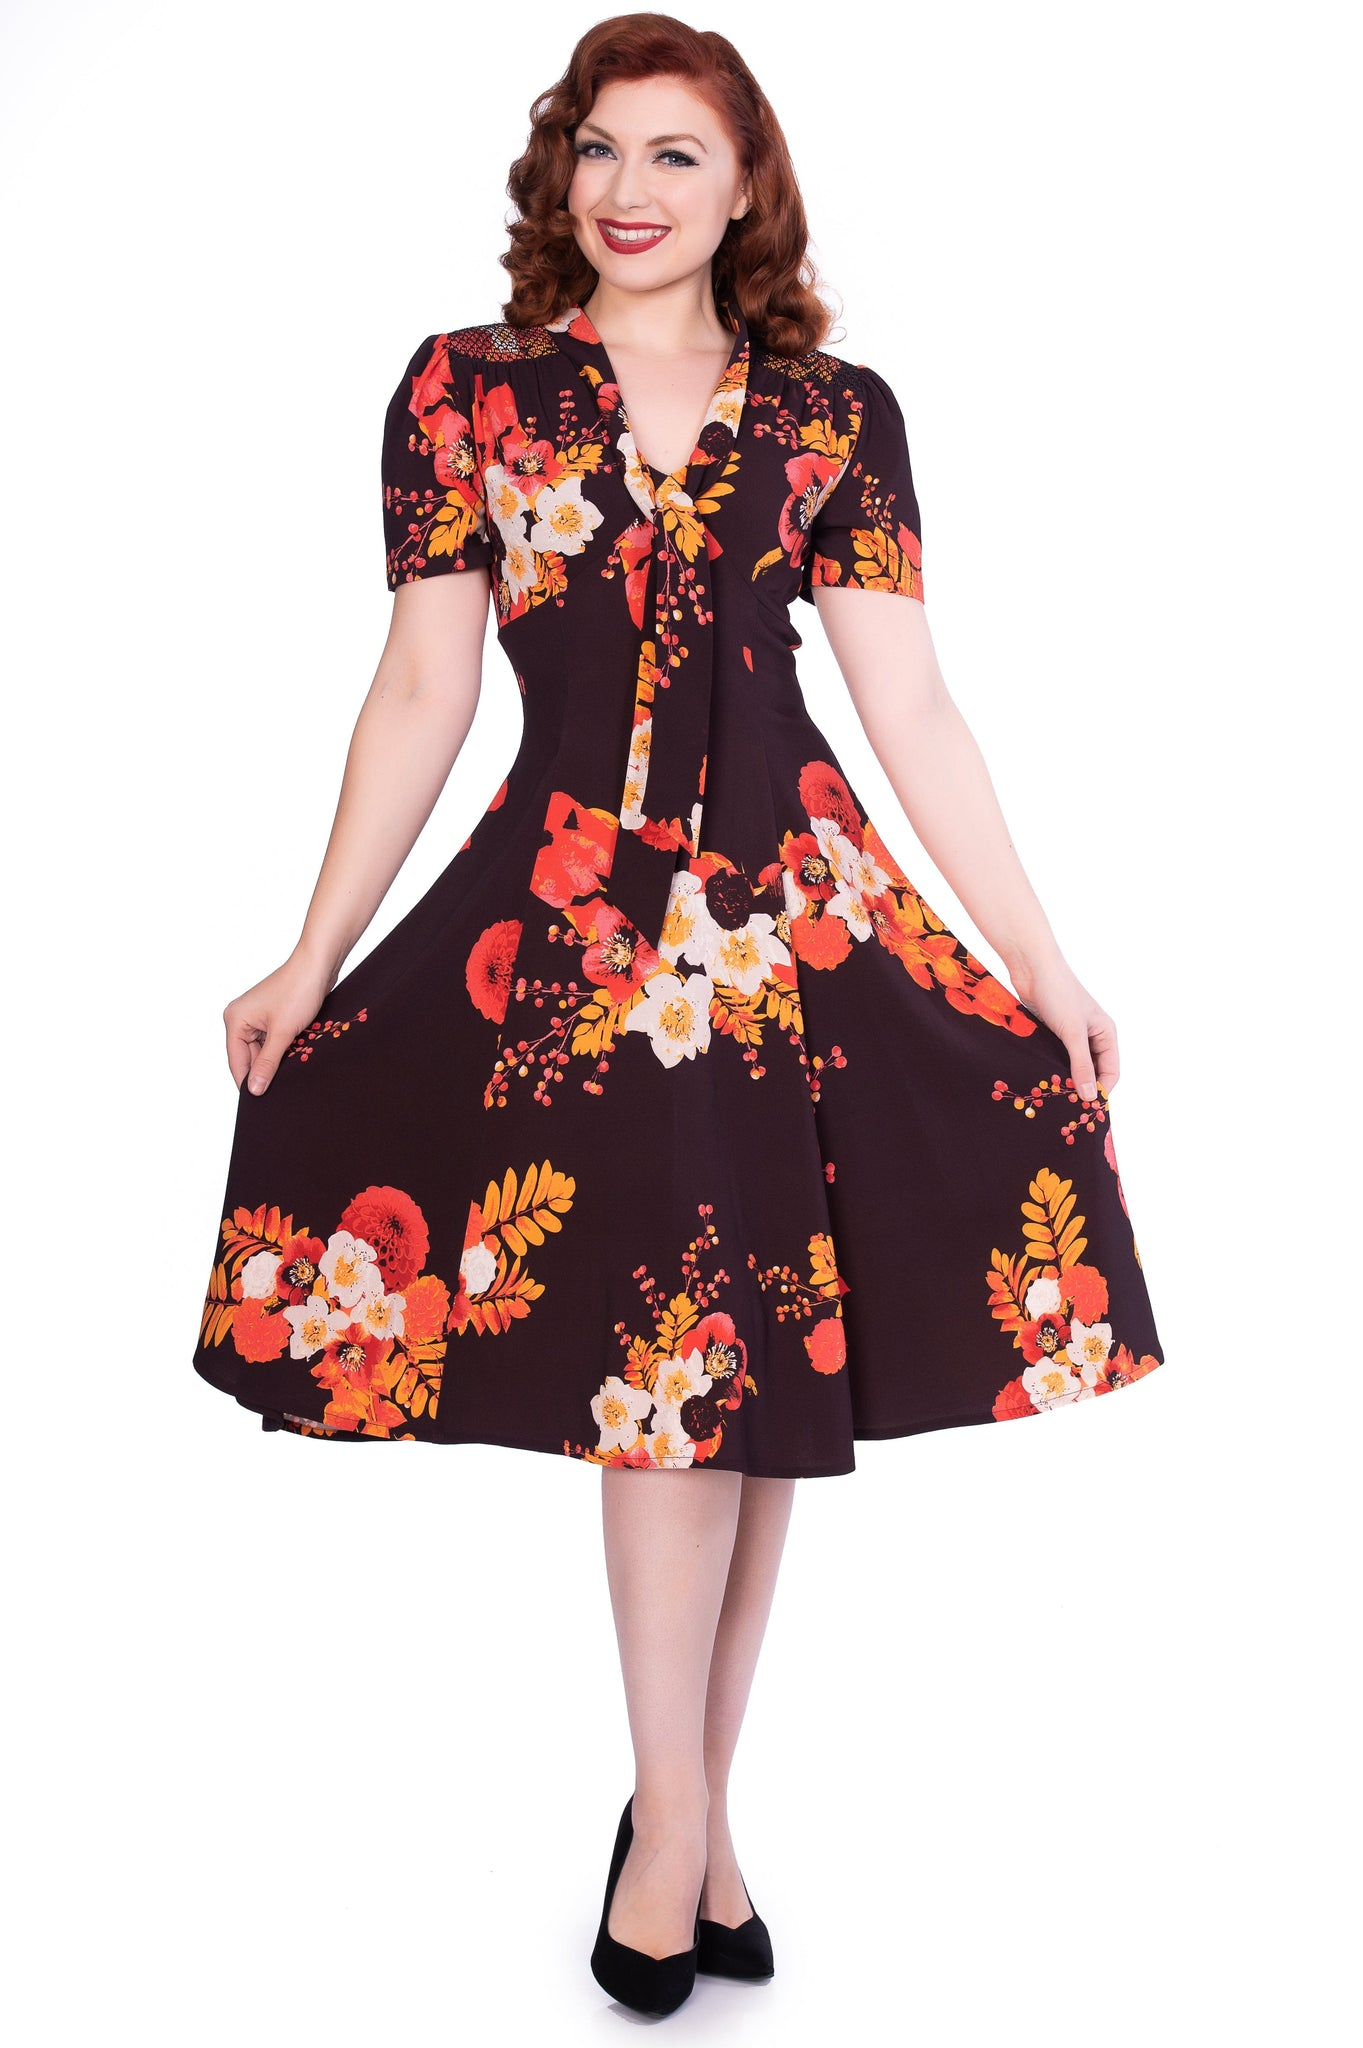 Izzy Burgandy Floral Dress